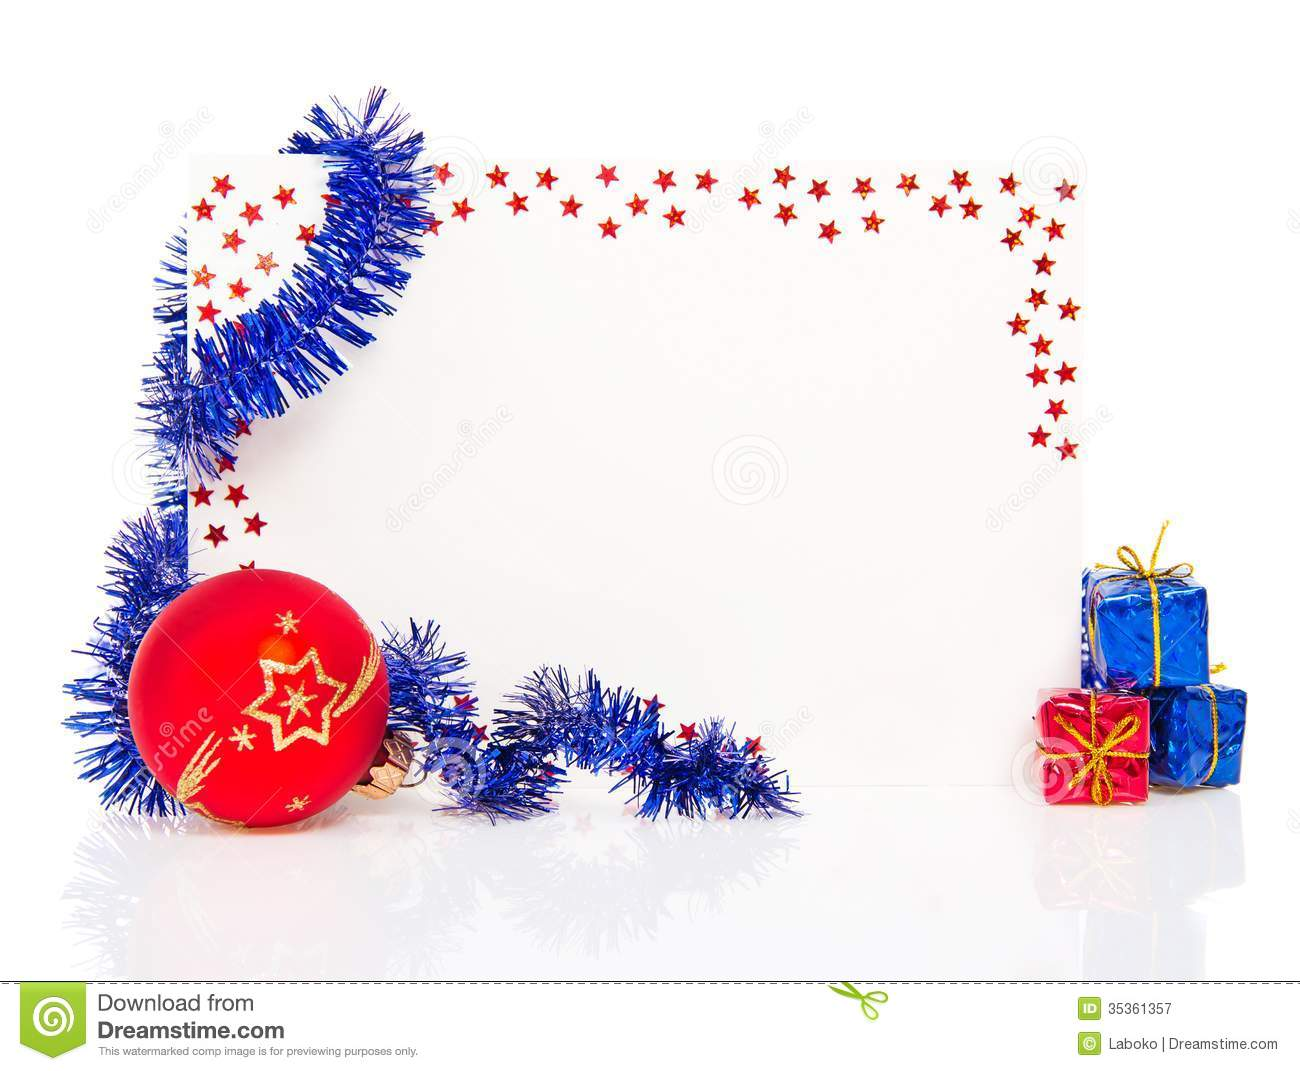 Happy New Year Greeting Card With Blue Tinsel Stock Image - Image of ...